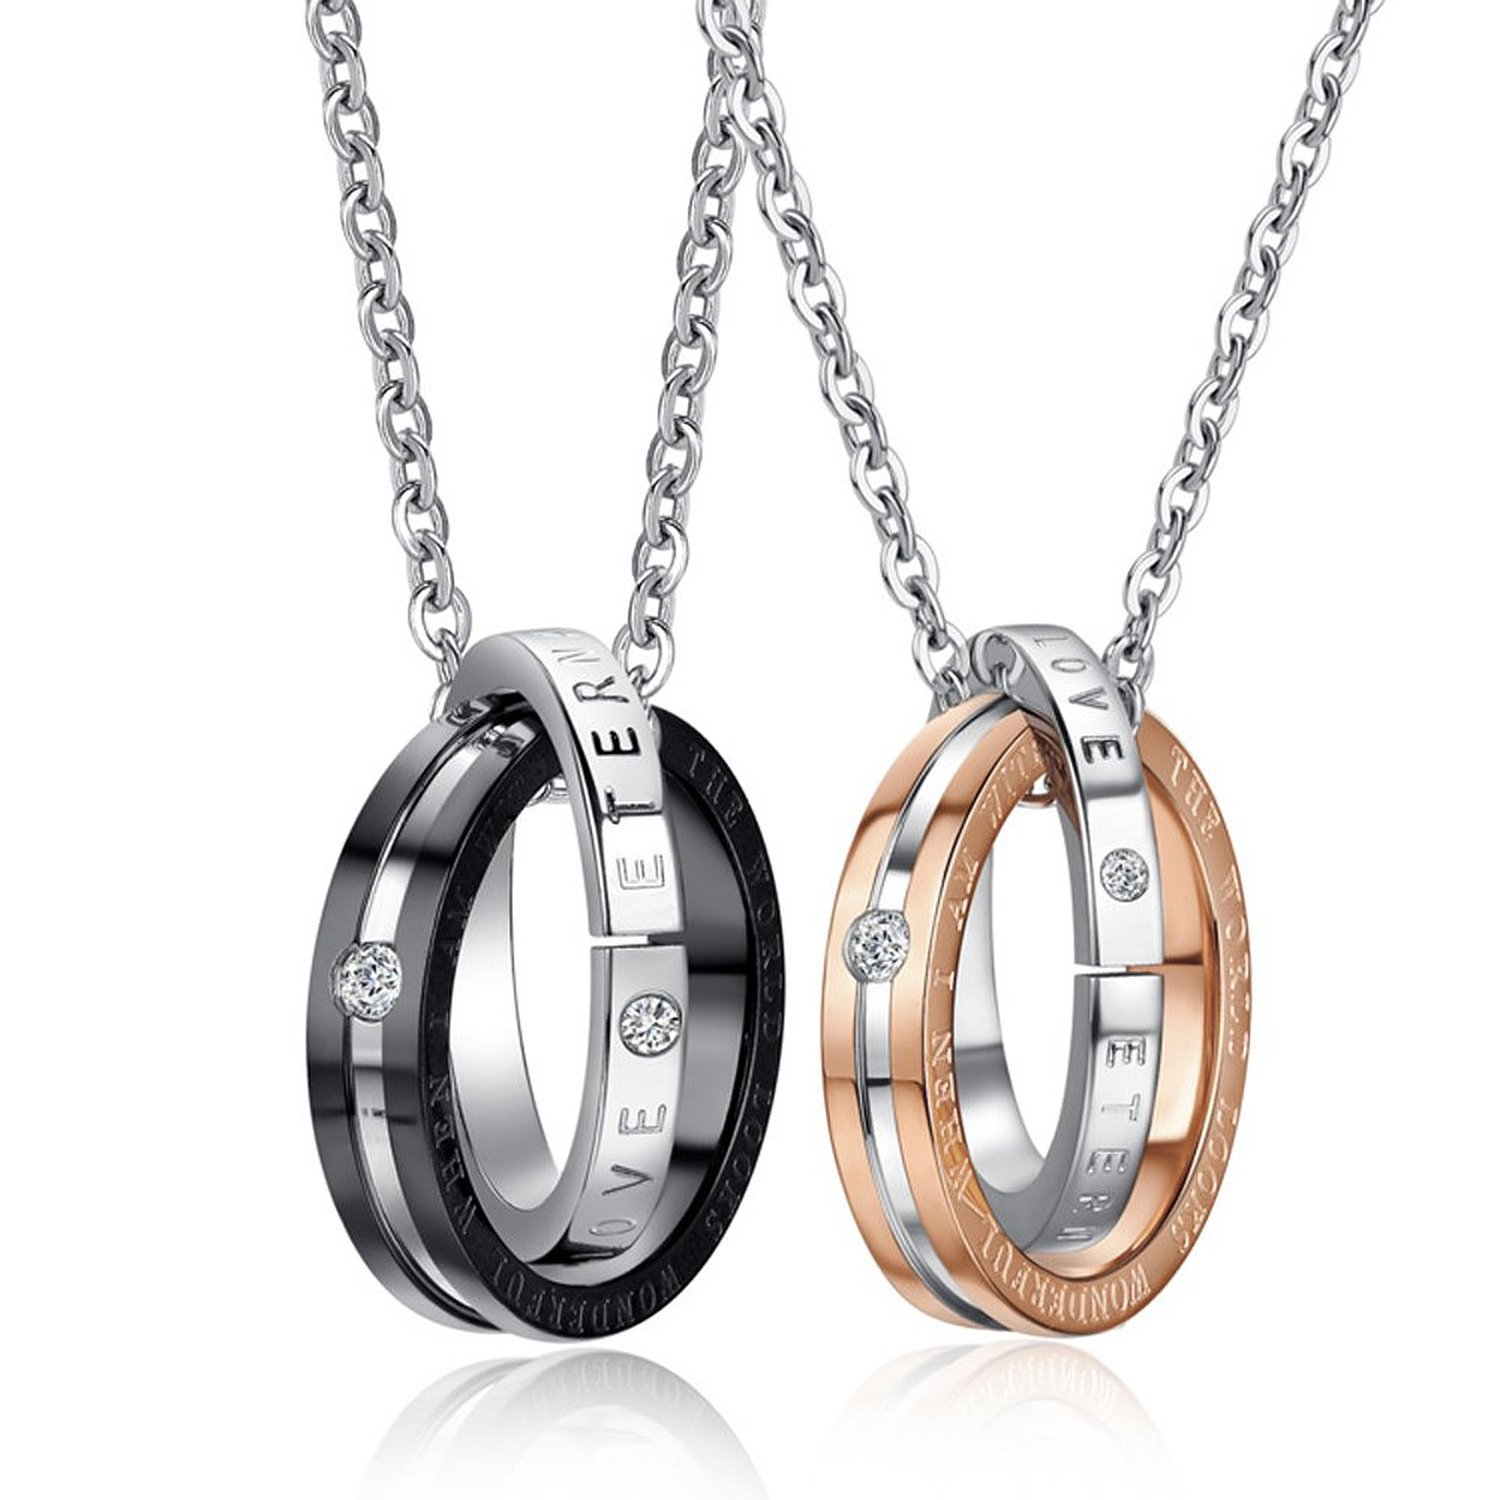 55909ee666 Get Quotations · 2PCS His & Hers Matching Set Titanium Stainless Steel  Couples Pendant Necklace